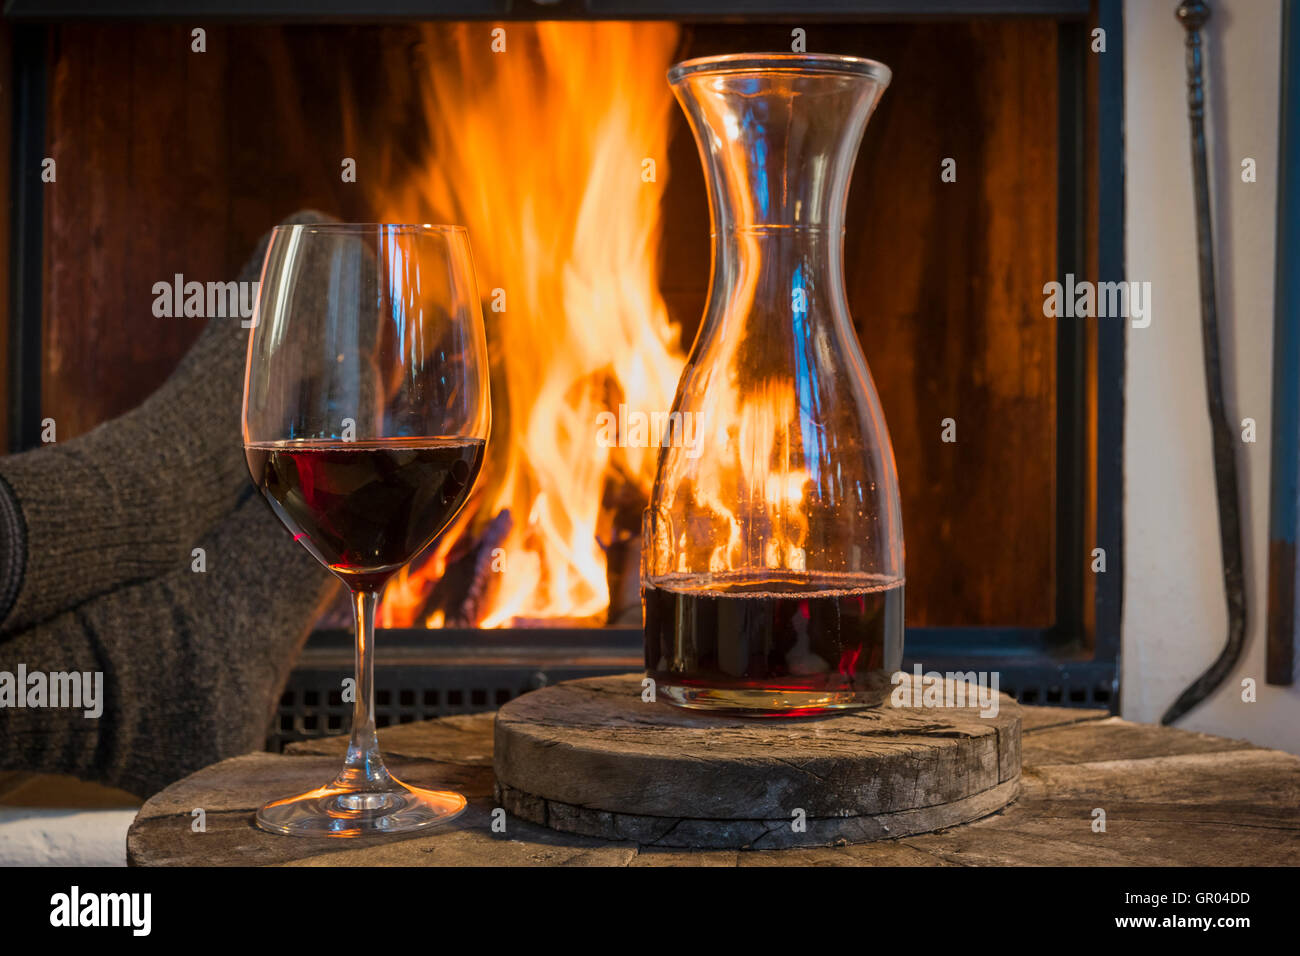 Riesling Am Kamin Weinkarte Fireside And Wine Stockfotos And Fireside And Wine Bilder